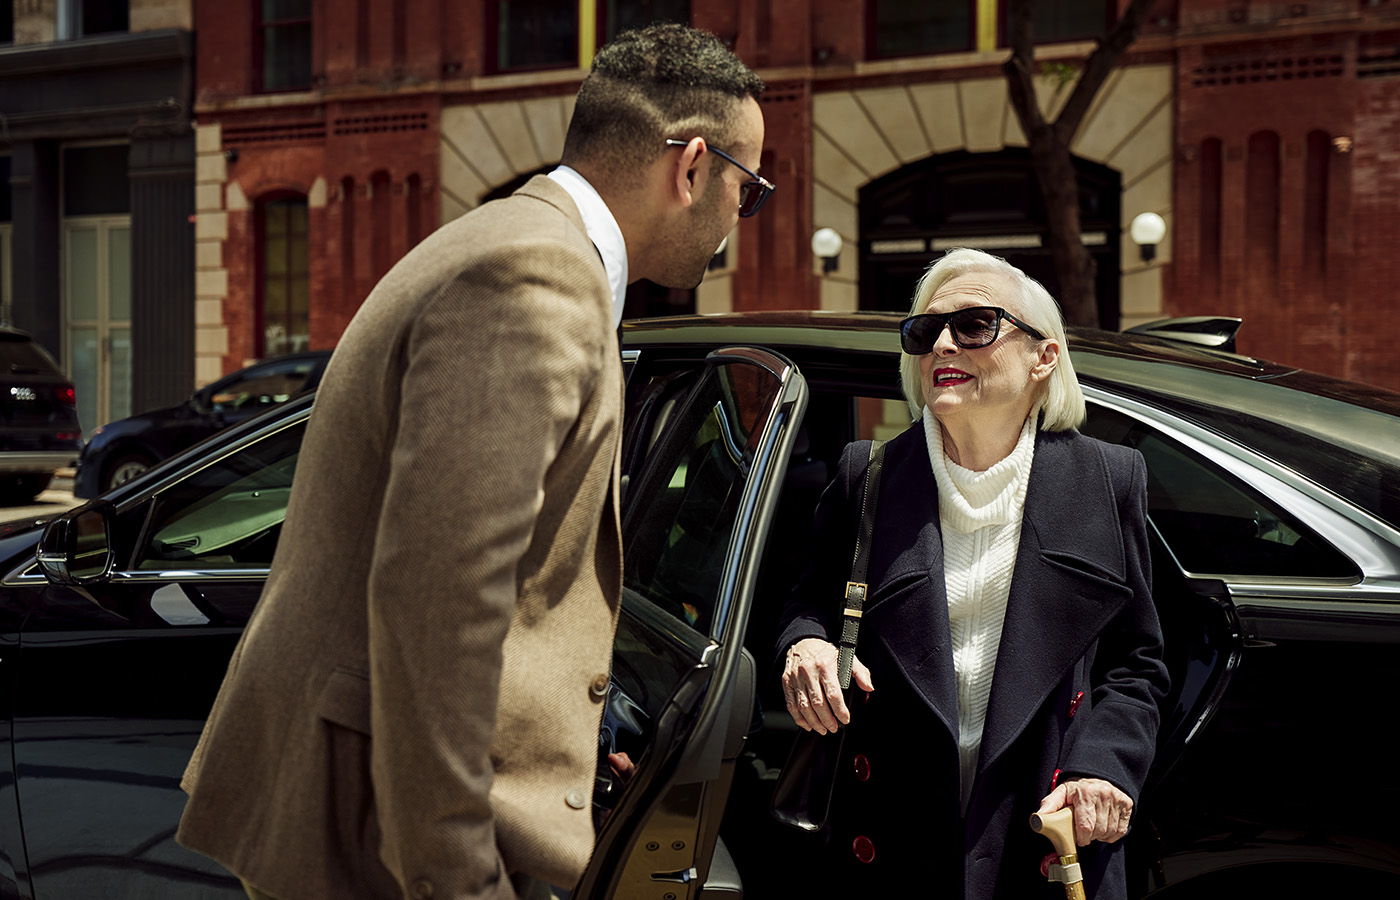 Woman arriving at her luxury Coterie Senior Living residence.